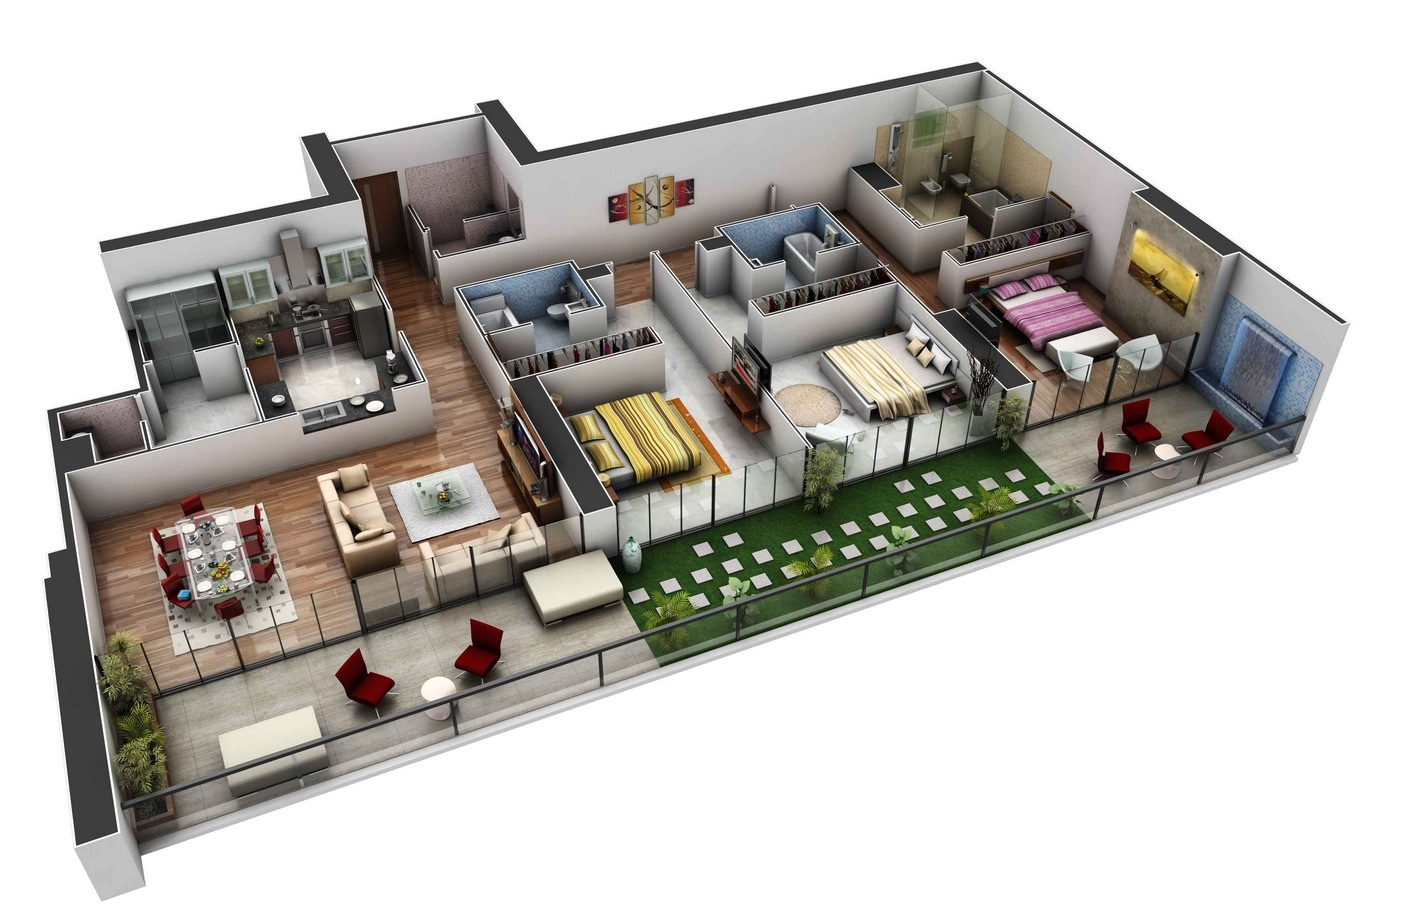 3 bedroom apartmenthouse plans - Home Design Floor Plans